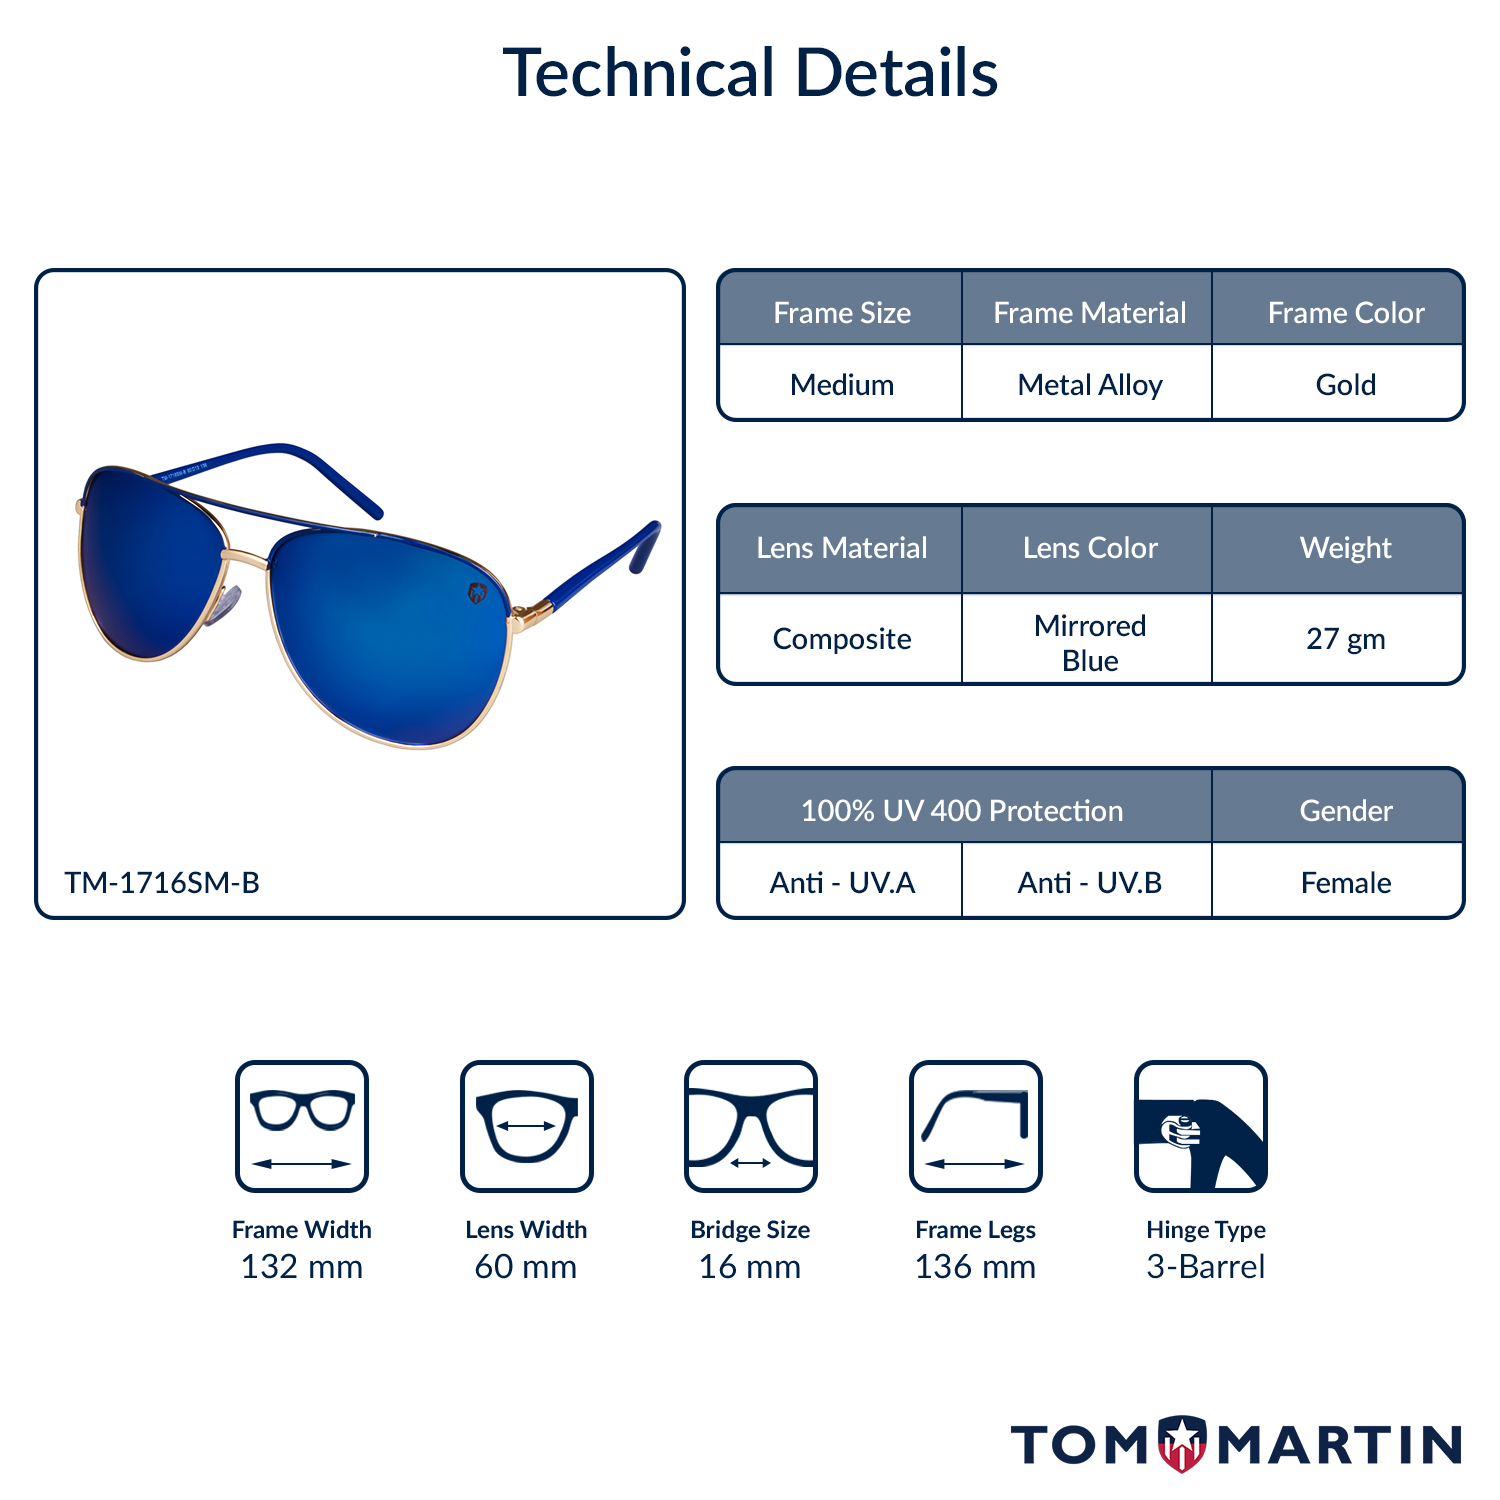 2ff04b7afff7d Buy Michelle - Mirrored Blue- Sunglasses for Women - Tom Martin